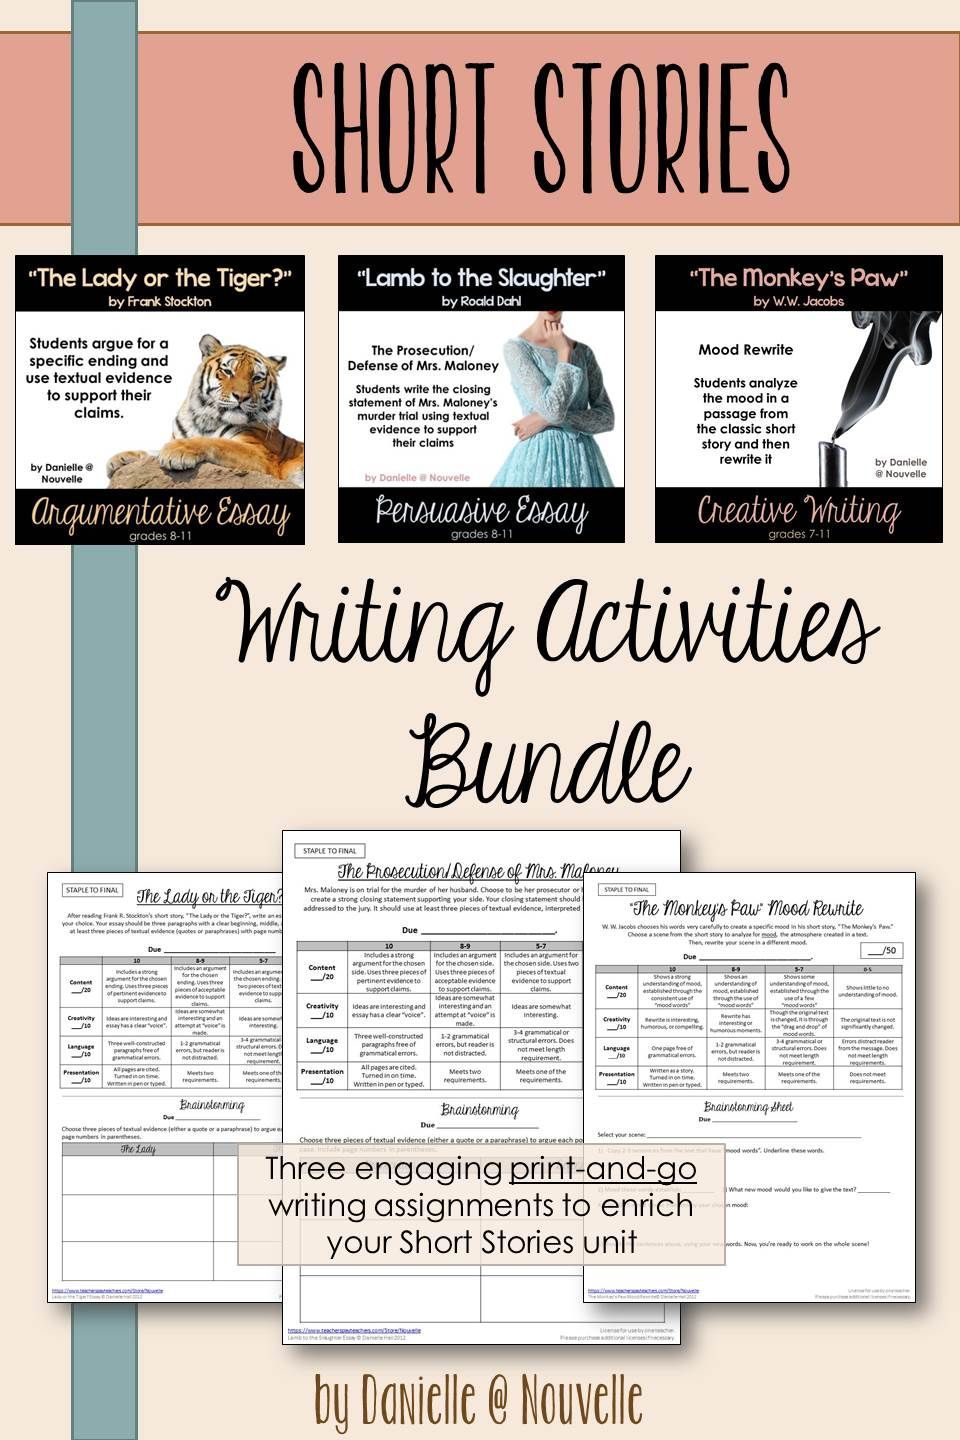 short stories  writing activities bundle  short stories for high  three fabulous writing activities to add to your short stories unit lamb  to the slaughter by roald dahl persuasive essay lady or the tiger